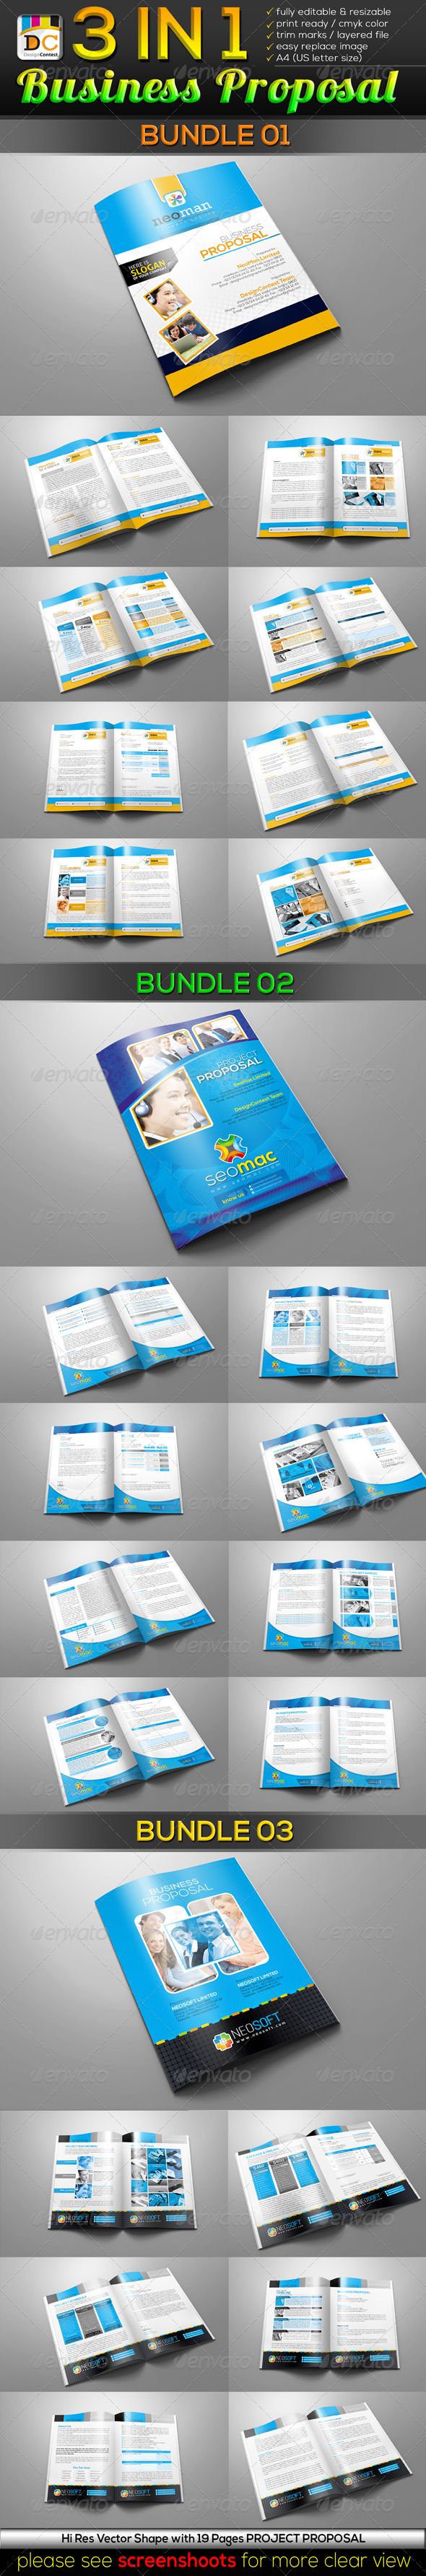 3 in 1 Business Project Proposal Bundle